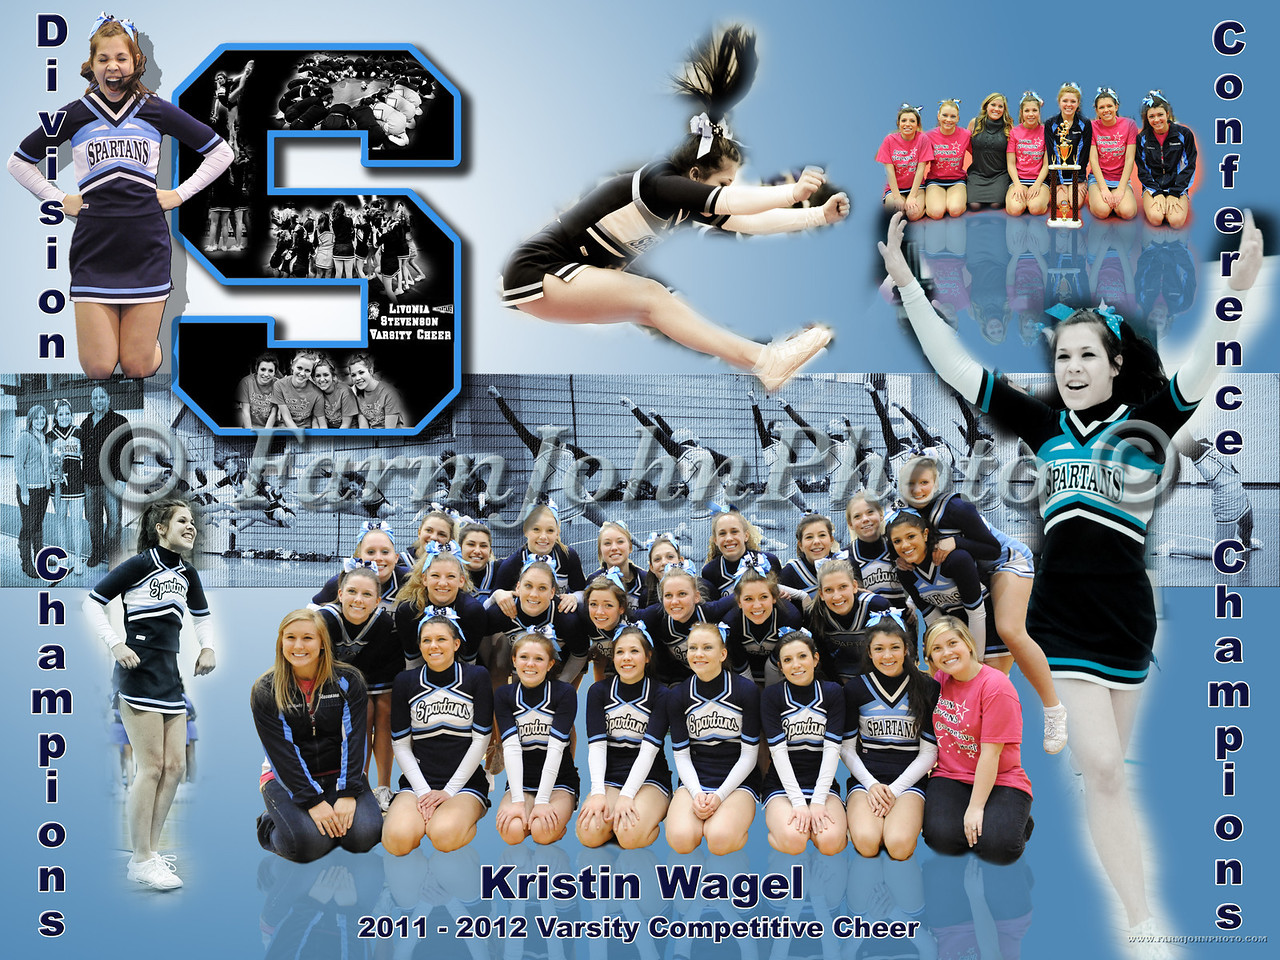 Kristin Wagel 24 x 18 Format Proof 5